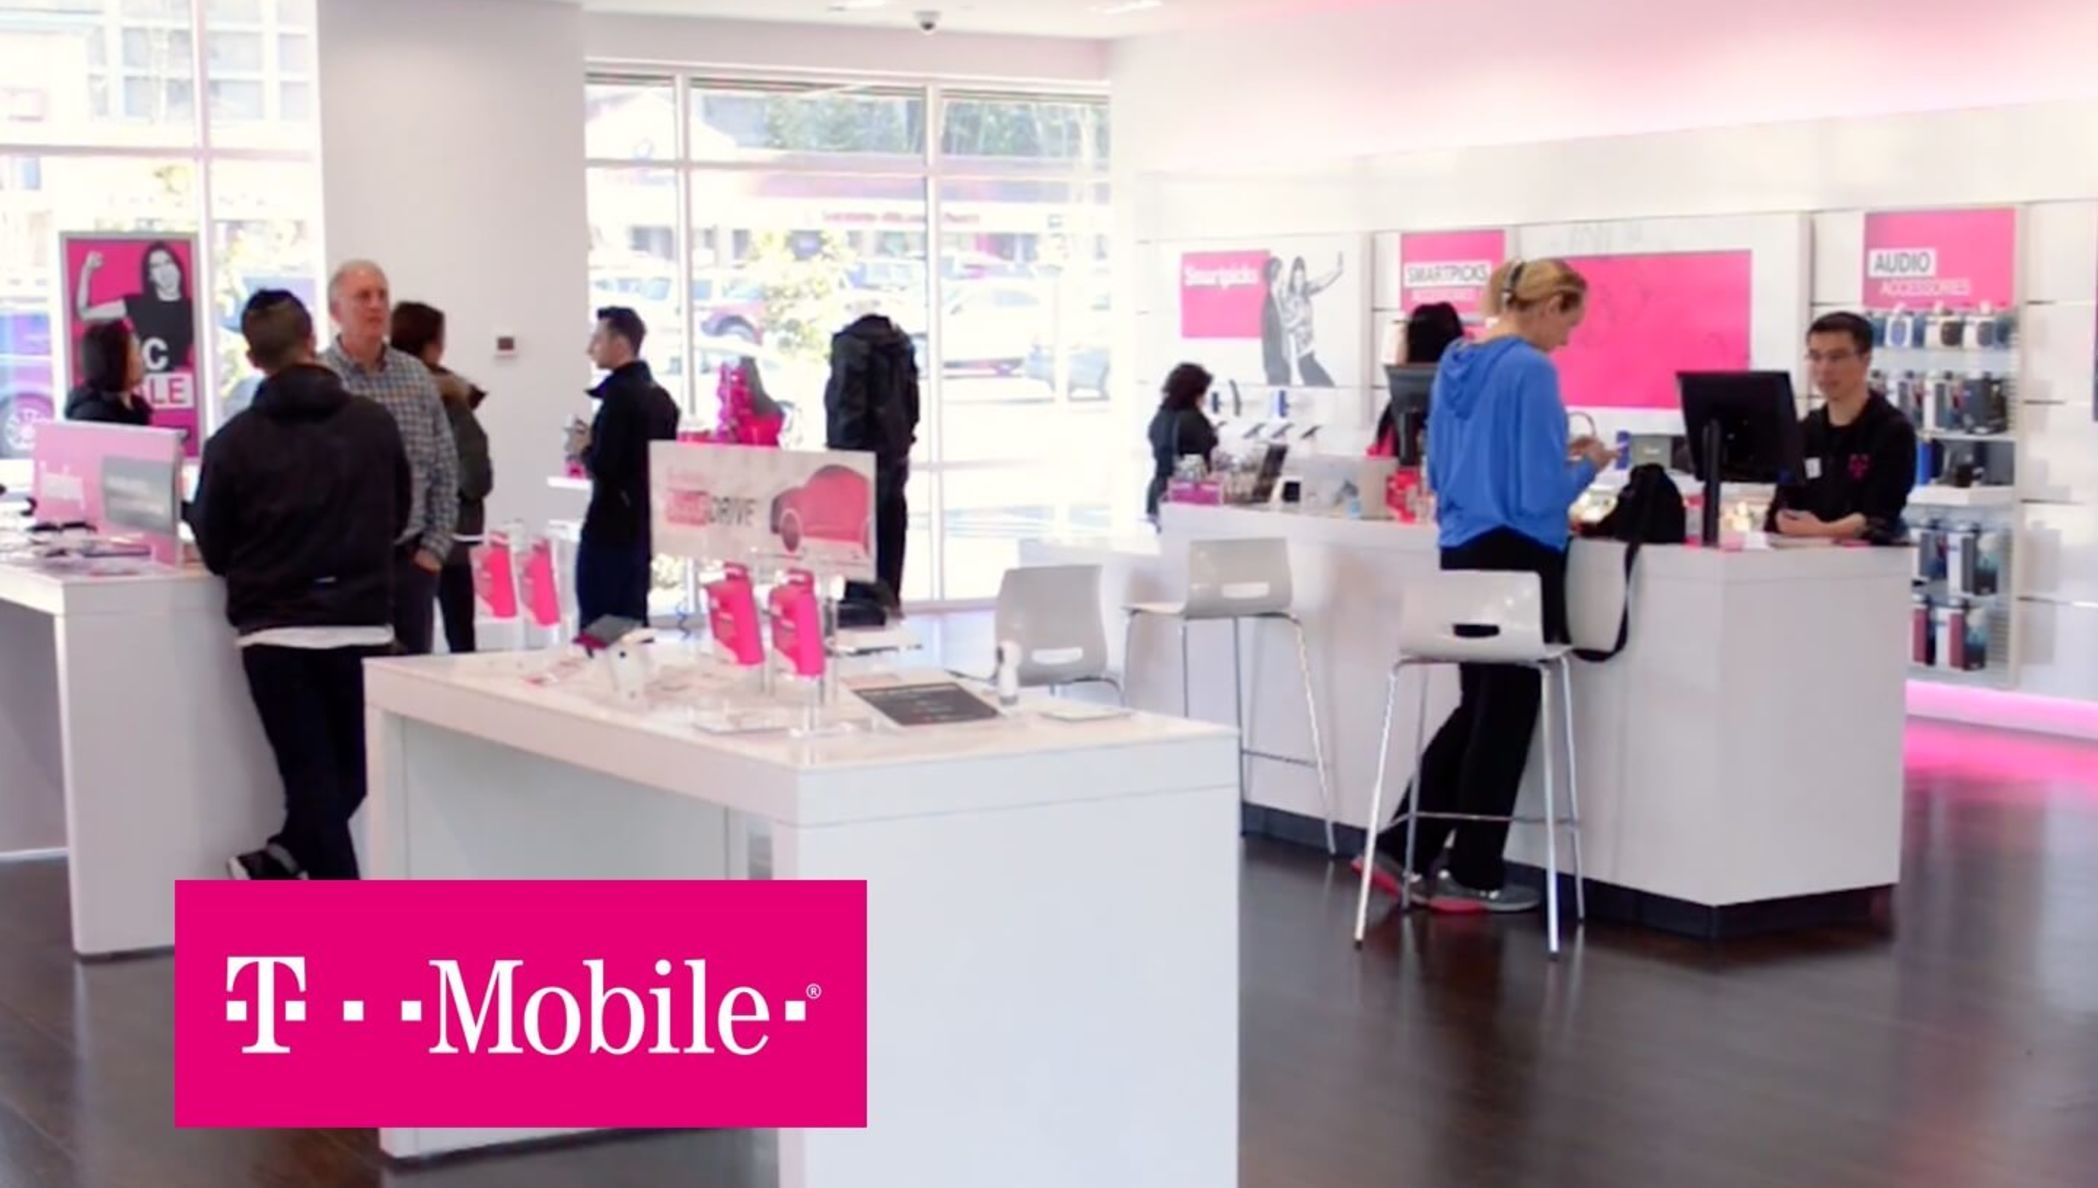 A T-mobile storefront with employees helping customers.